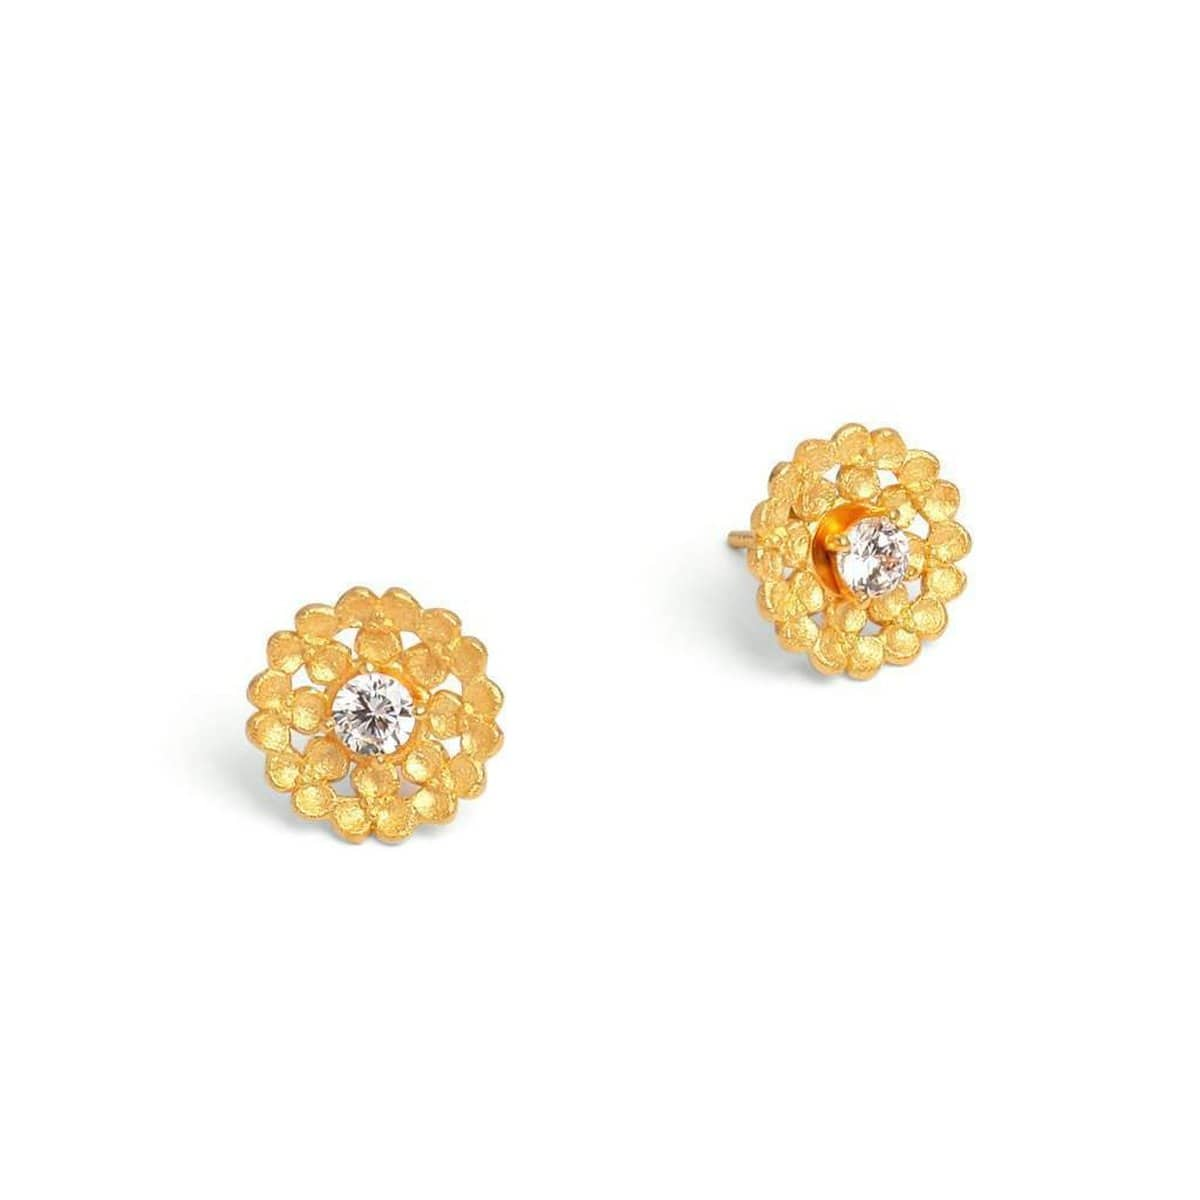 Leami Zirconia Earrings - 19940156